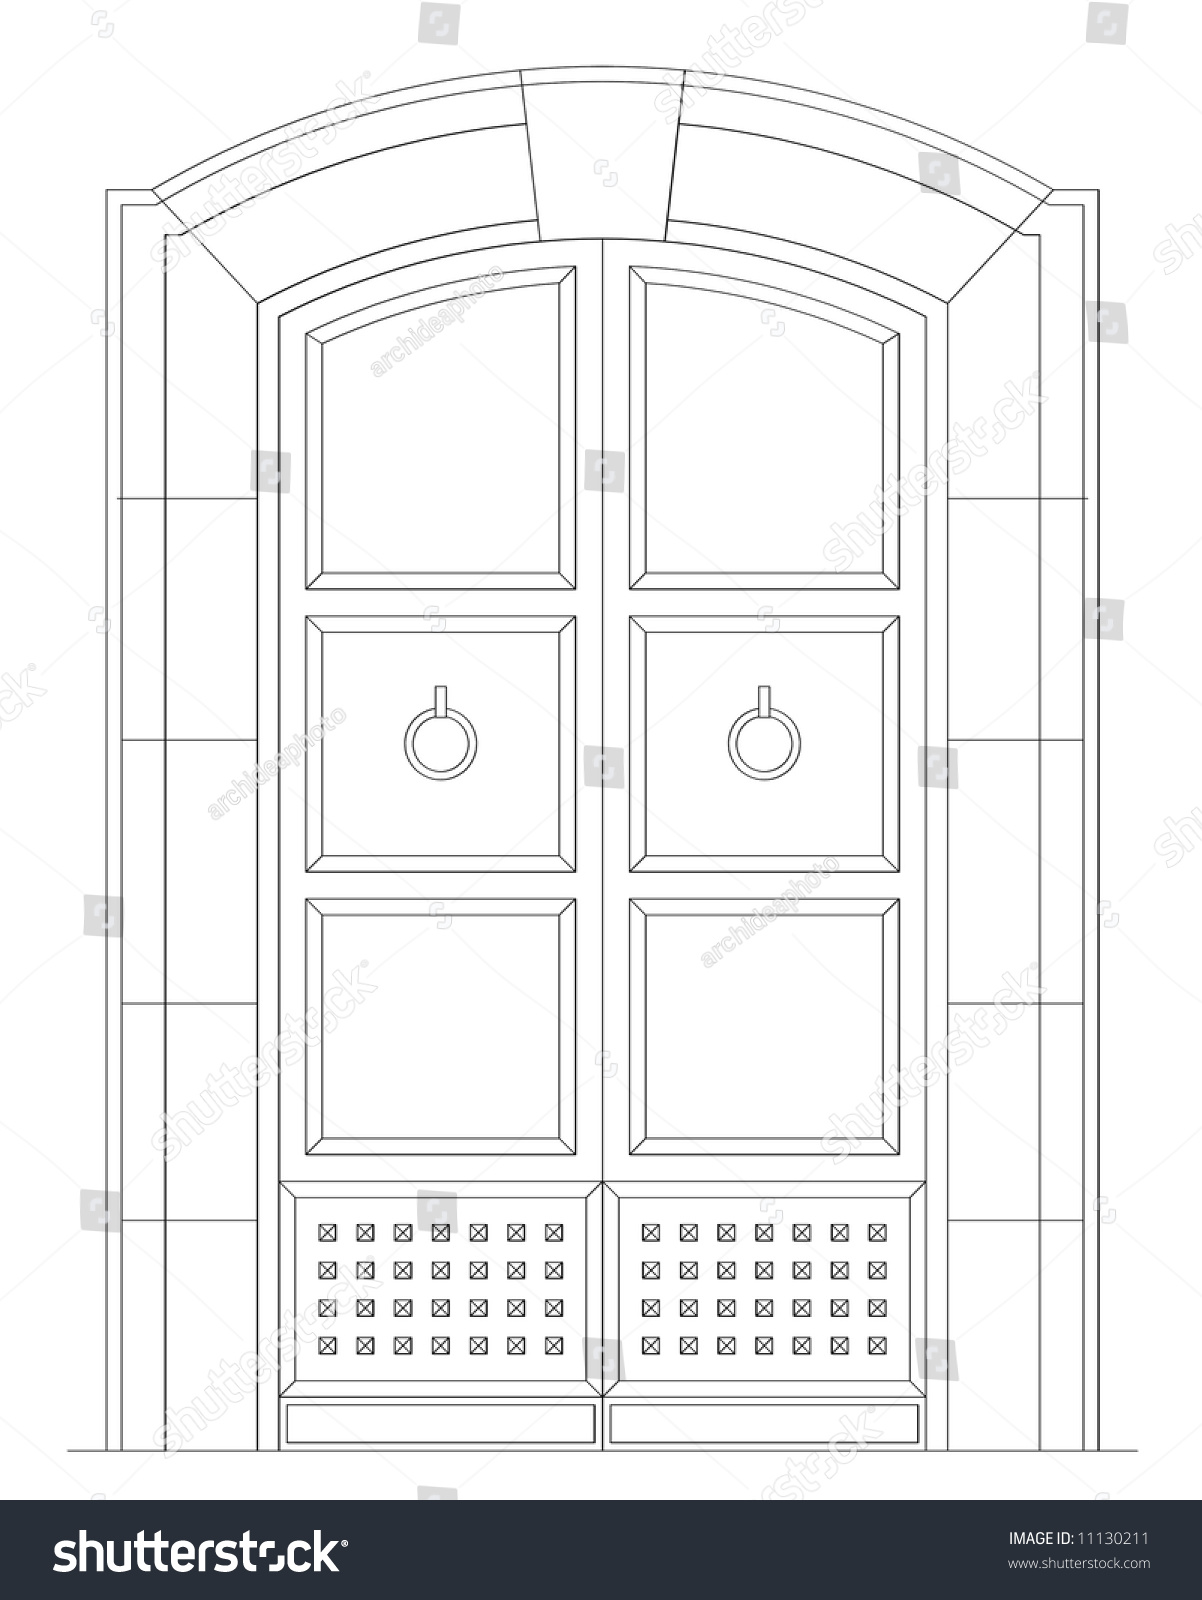 Front Elevation In 2d : Plant elevation ancient front door d stock illustration